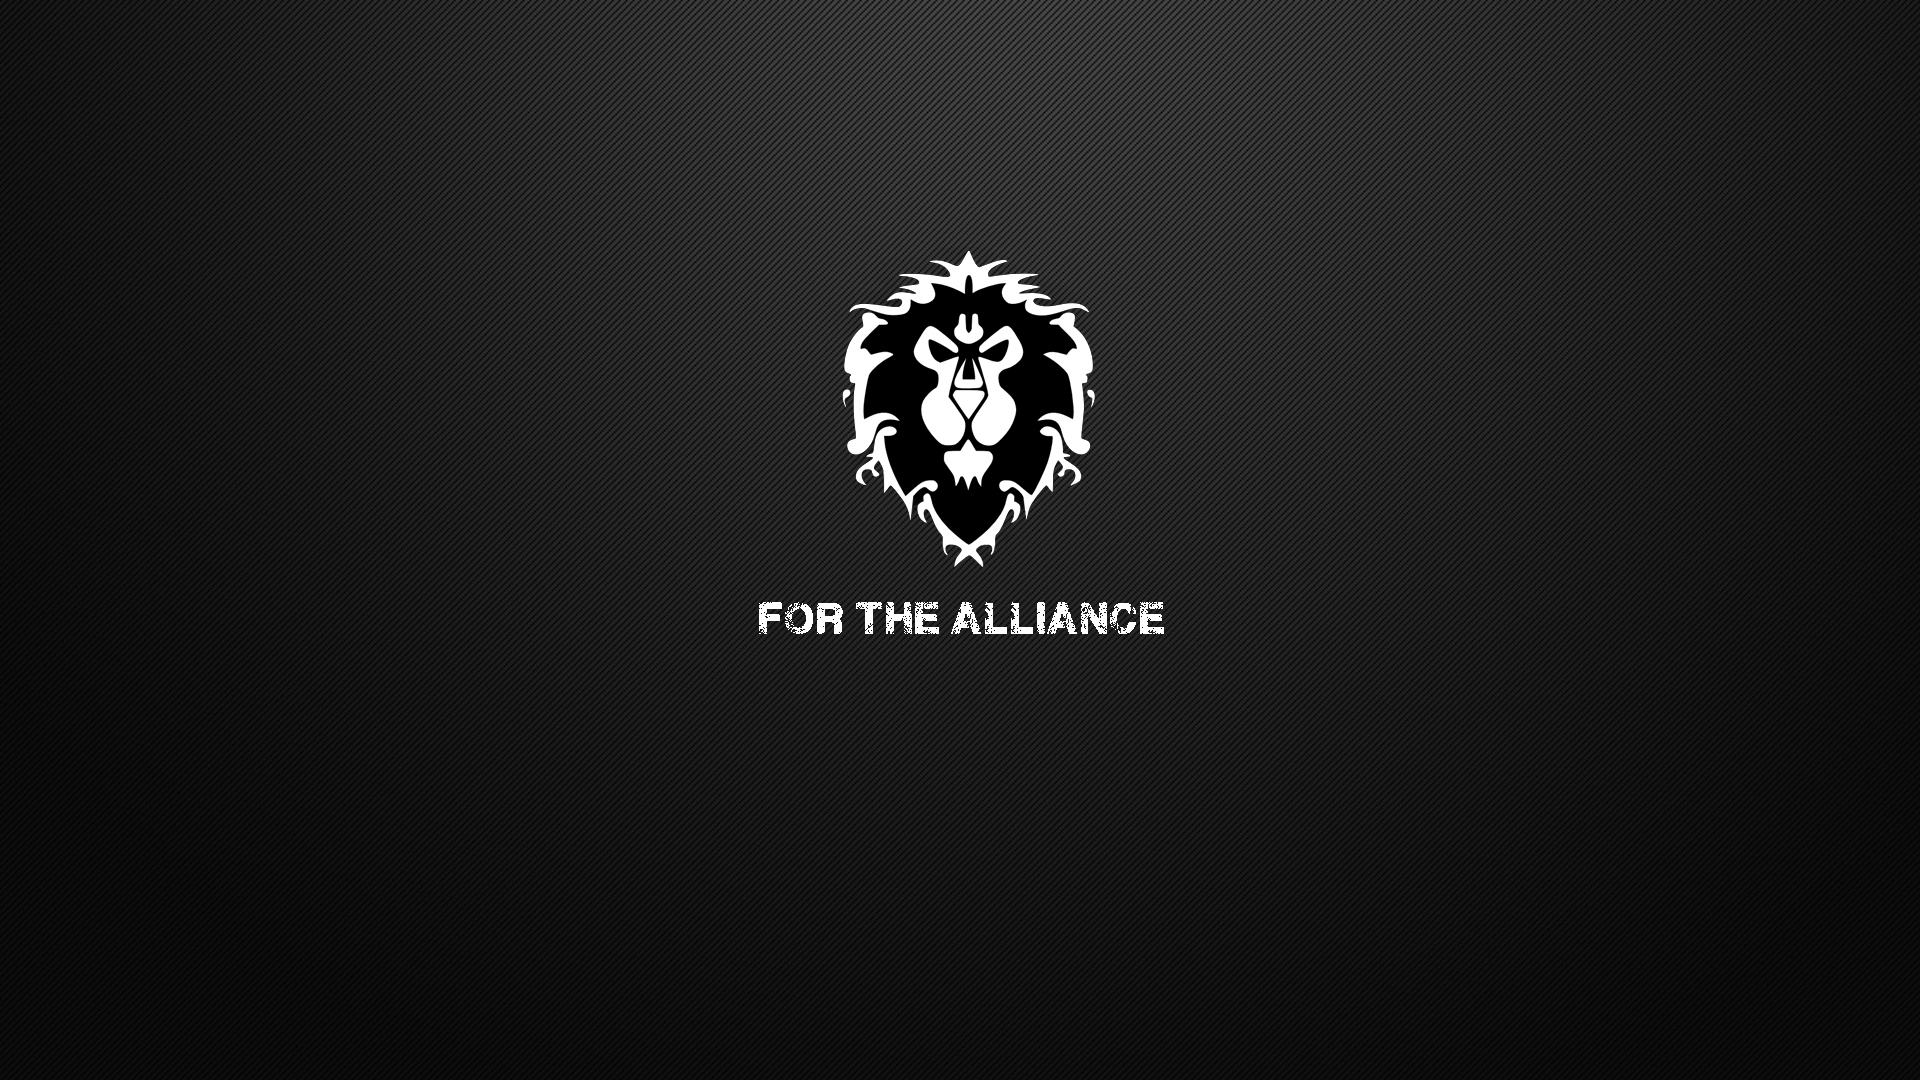 World of Warcraft for the alliance wallpaper by Ariizon on deviantART 1920x1080